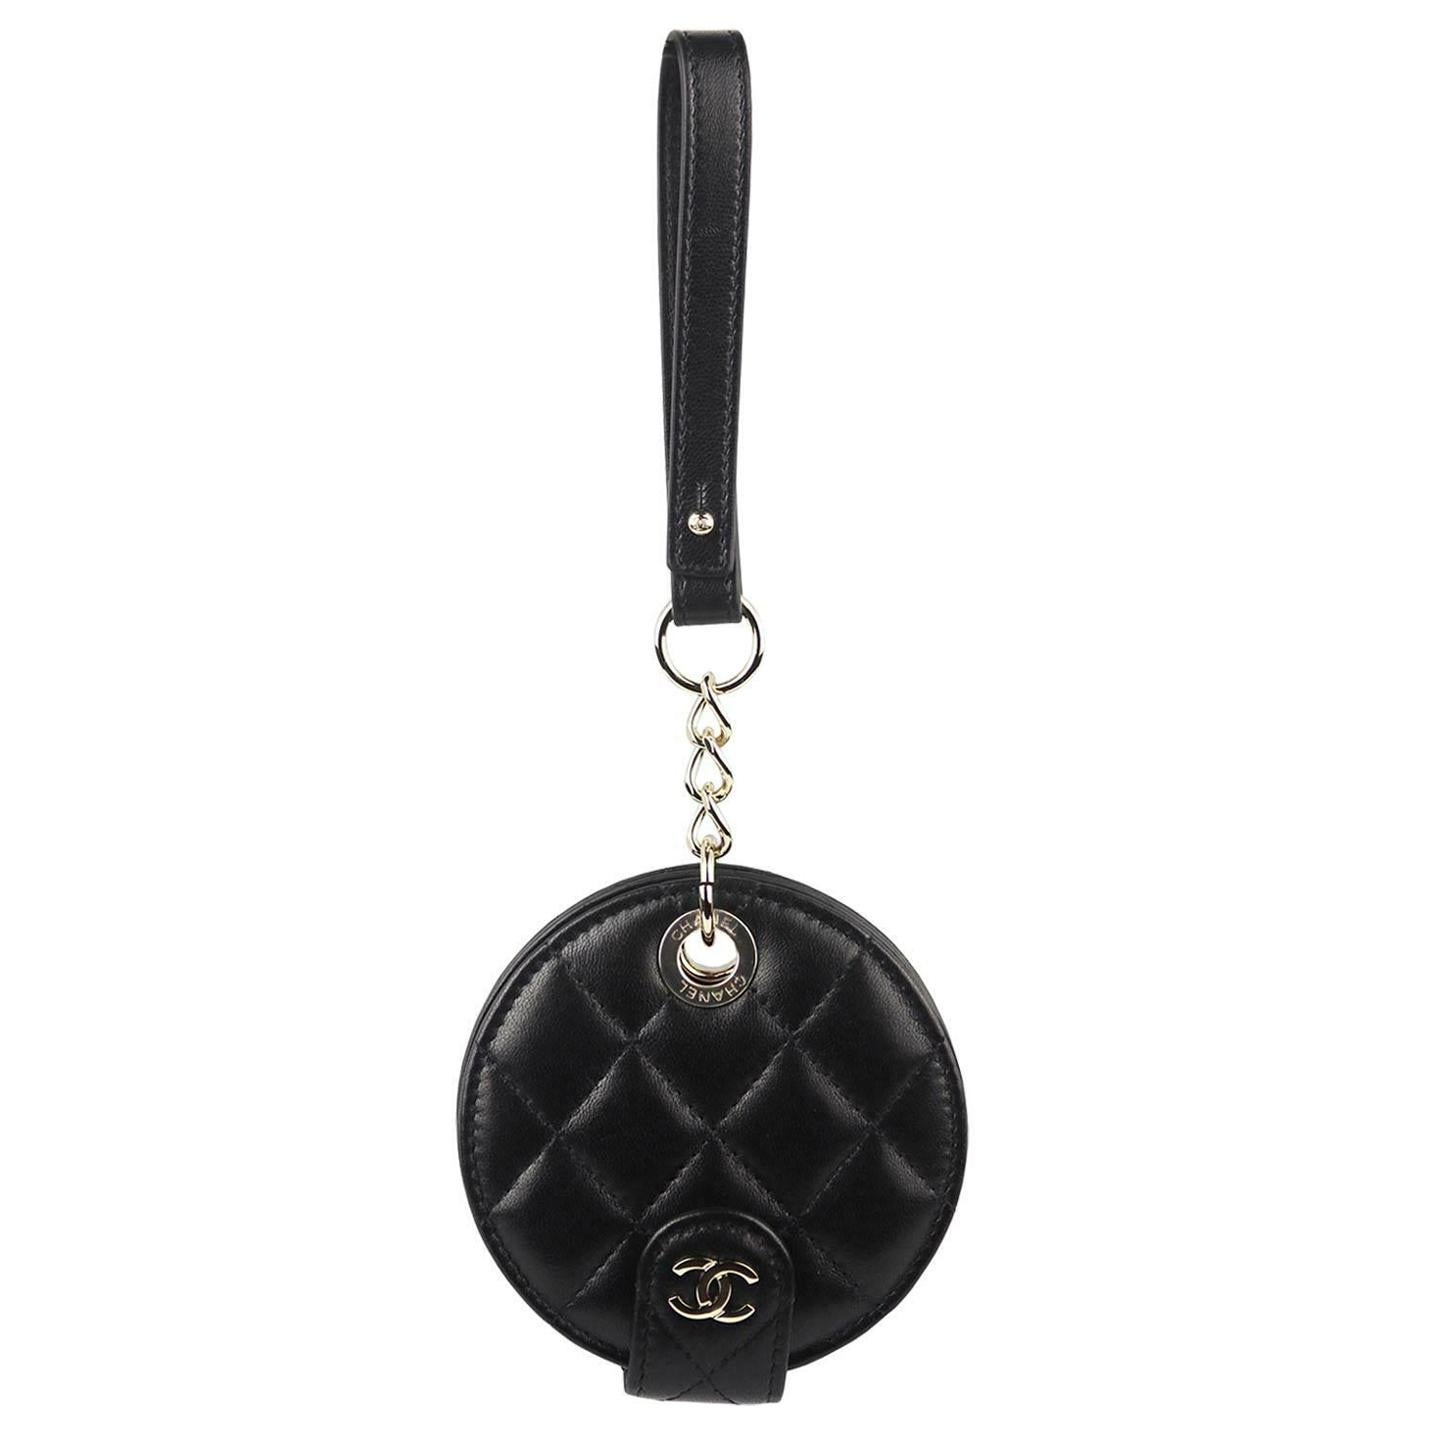 Chanel Quilted Lambskin Leather Luggage Tag